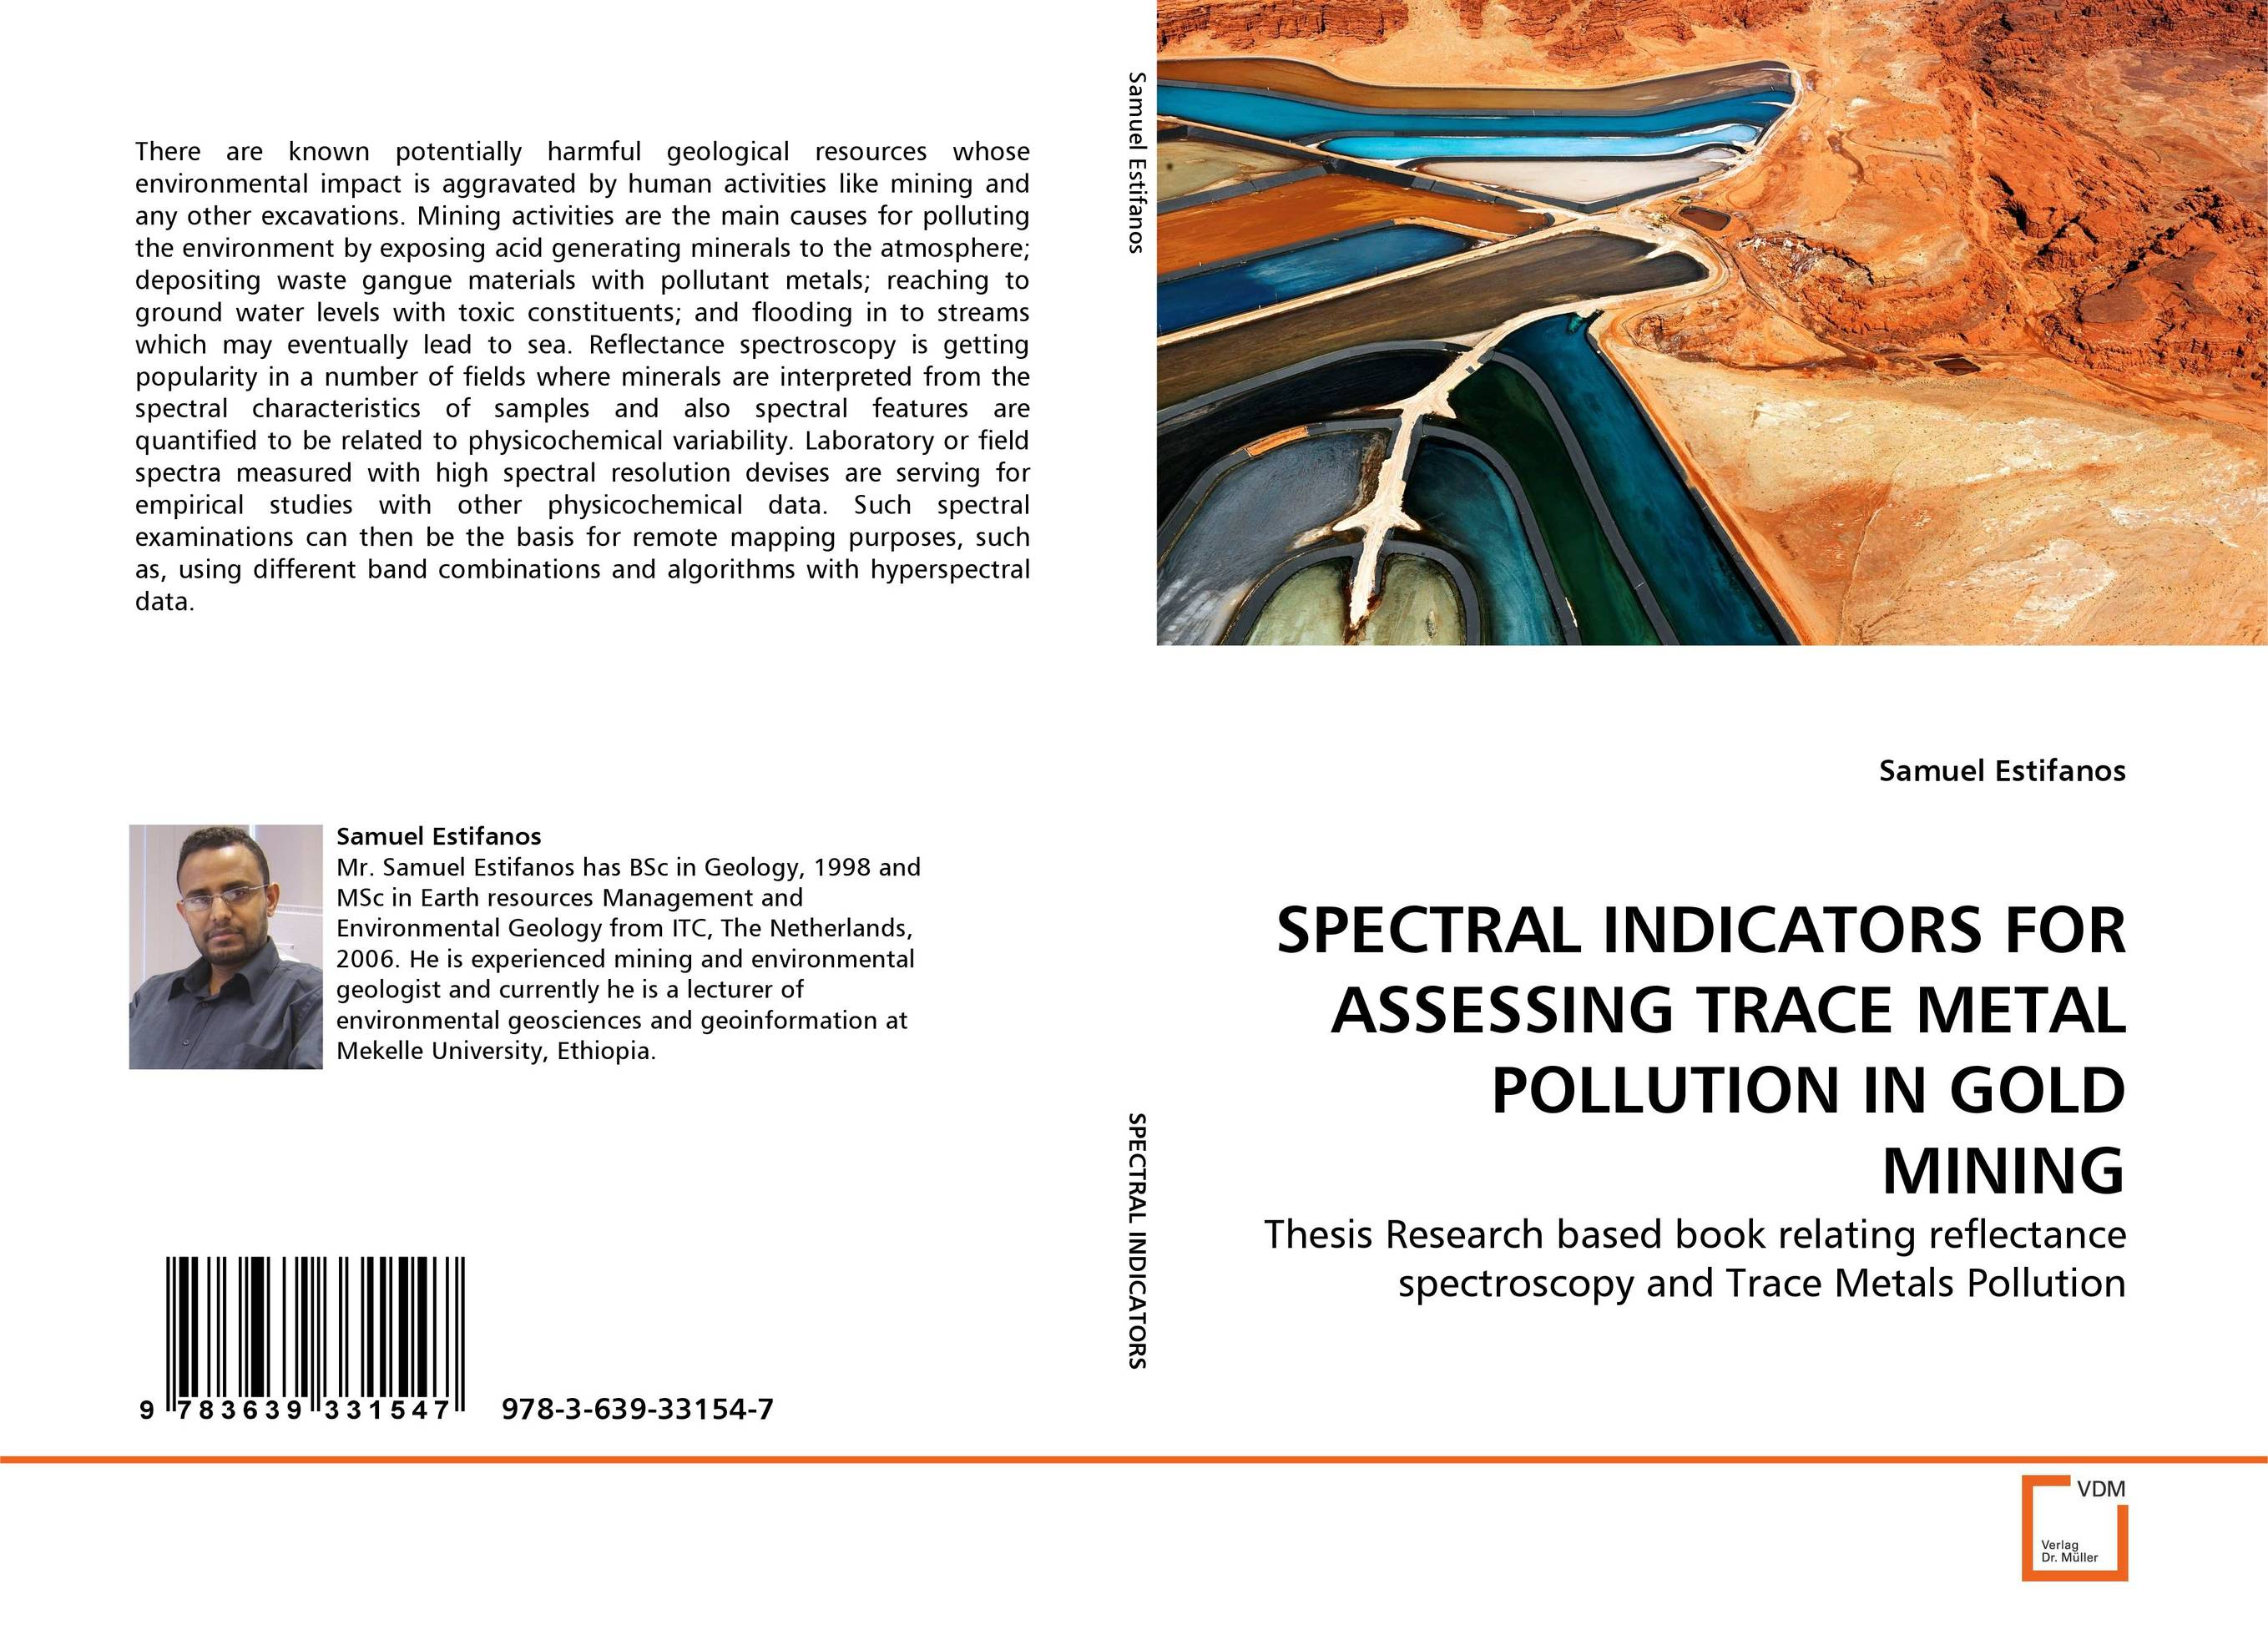 SPECTRAL INDICATORS FOR ASSESSING TRACE METAL POLLUTION IN GOLD MINING assessing the toxic effects of sodium metabisulphite